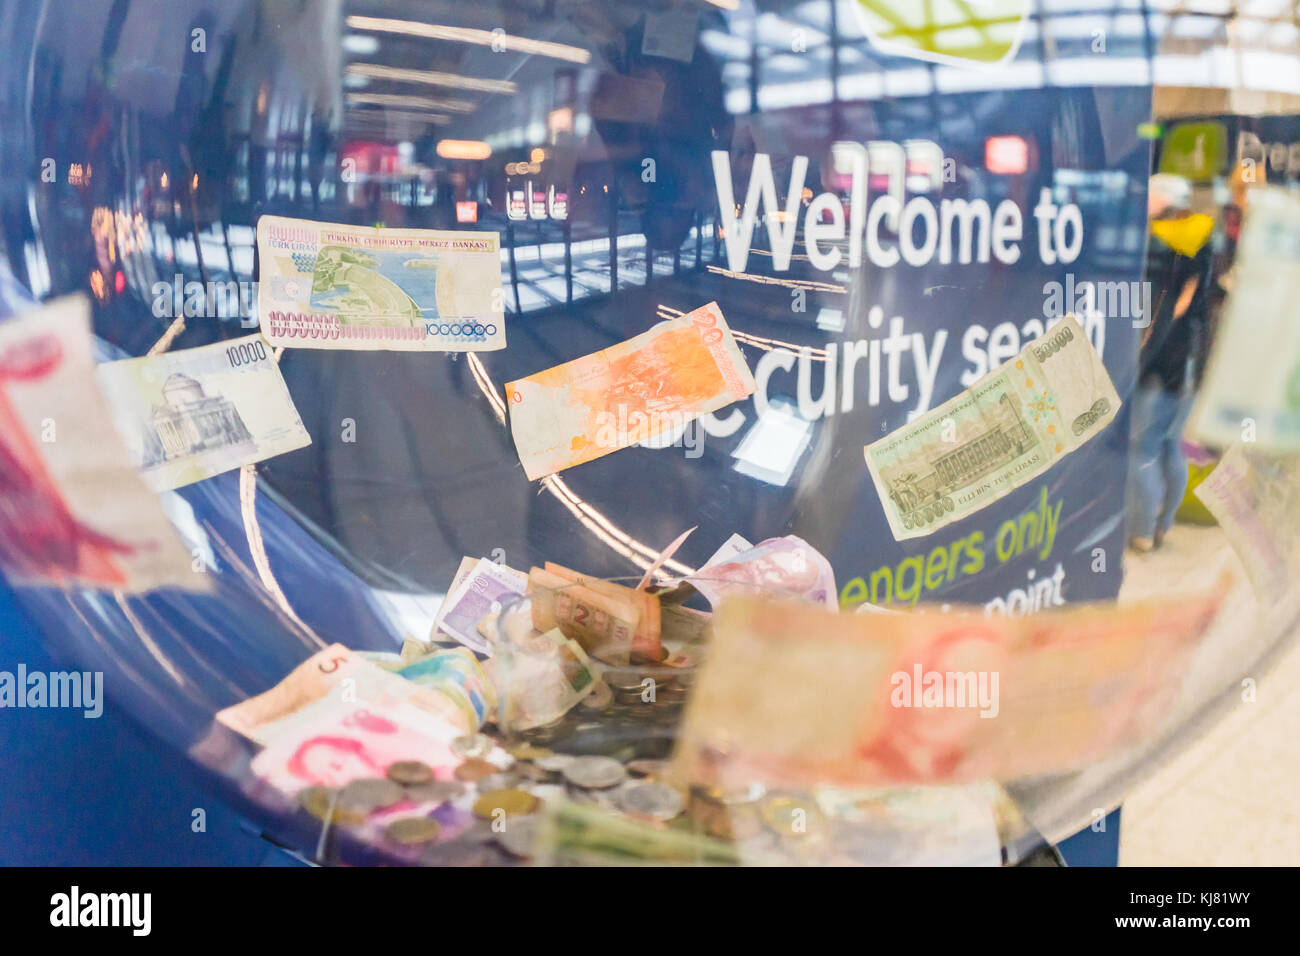 Foreign currency money donation box at Gatwick airport, England, UK - Stock Image